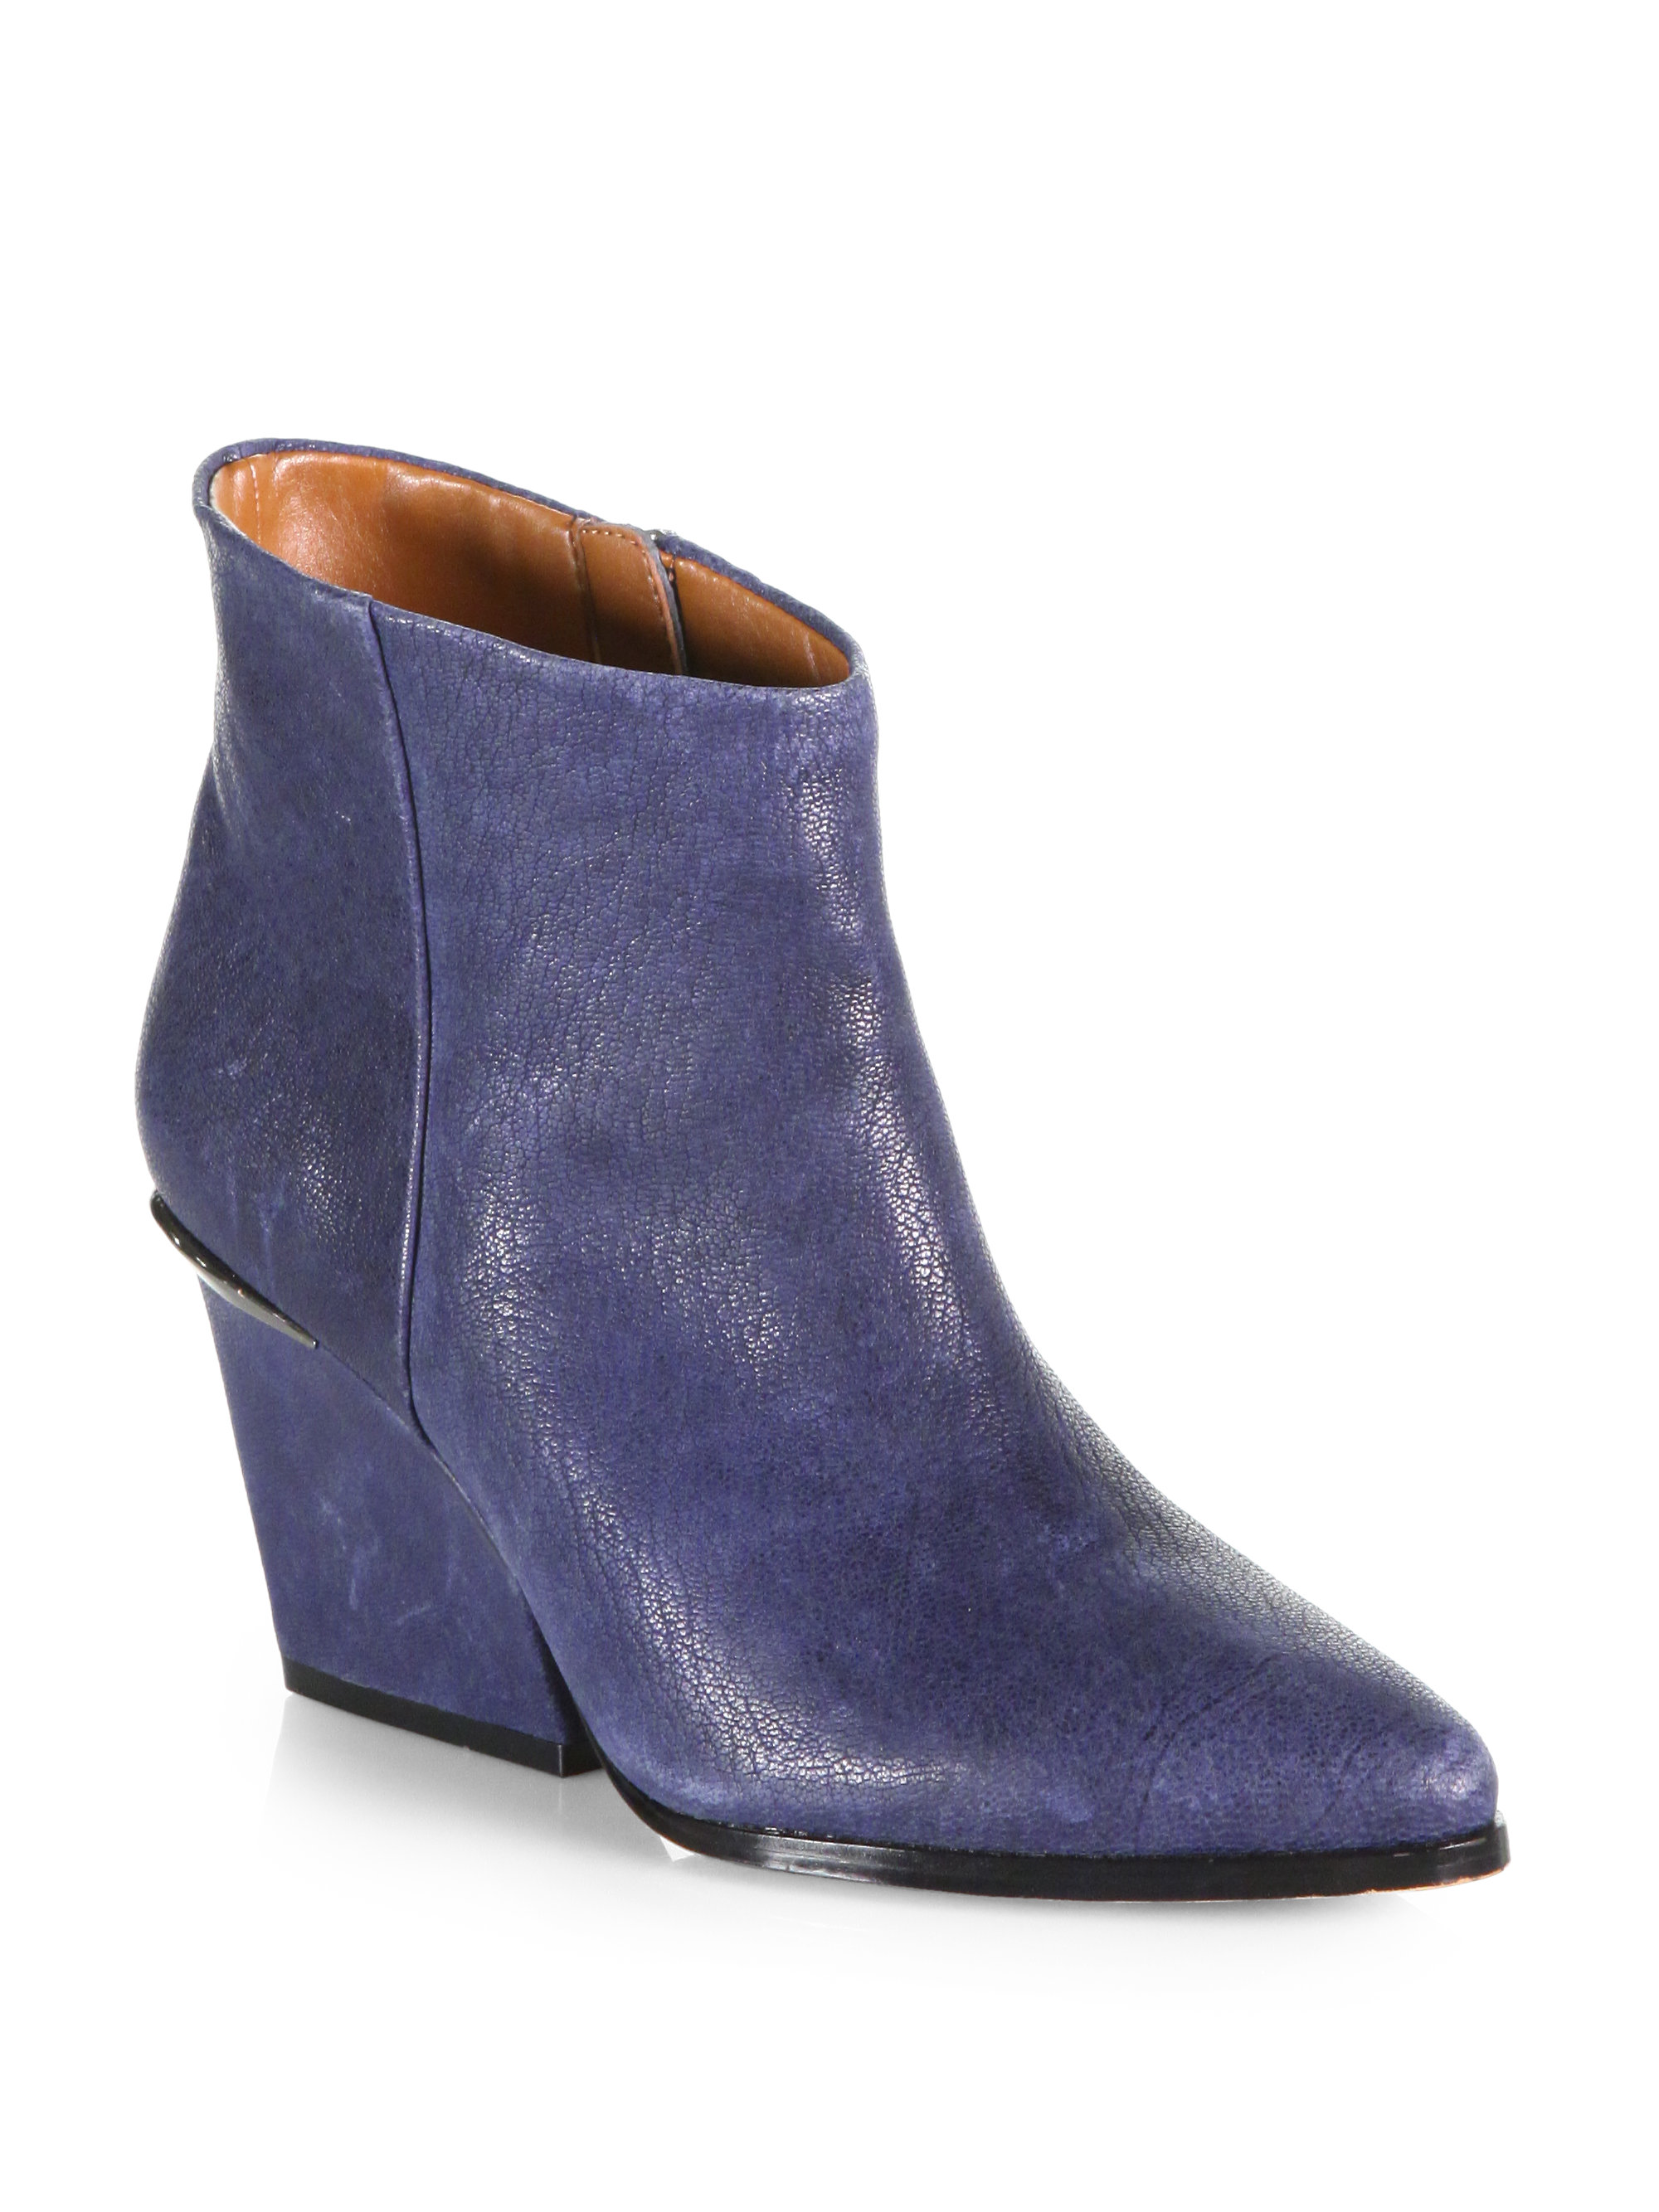 Lyst Boutique 9 Isoke Leather Western Ankle Boots In Blue